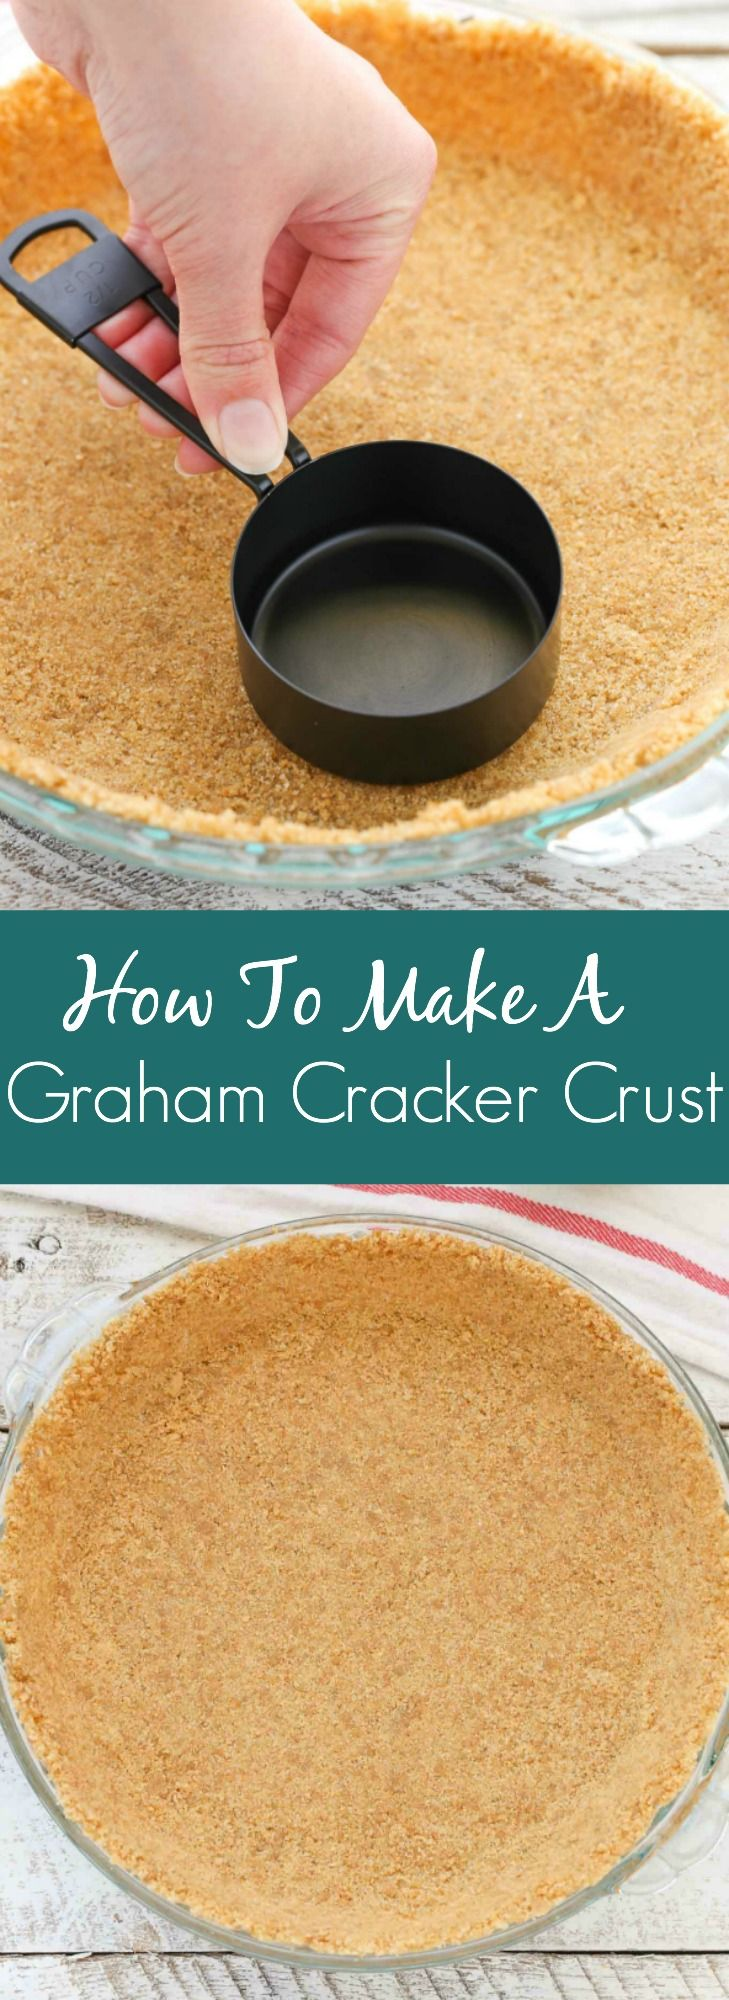 Best 25 make your own crackers ideas on pinterest baked cracker learn how easy it is to make your own graham cracker crust with this simple tutorial you only need three ingredients and about 10 minutes to prepare this solutioingenieria Choice Image